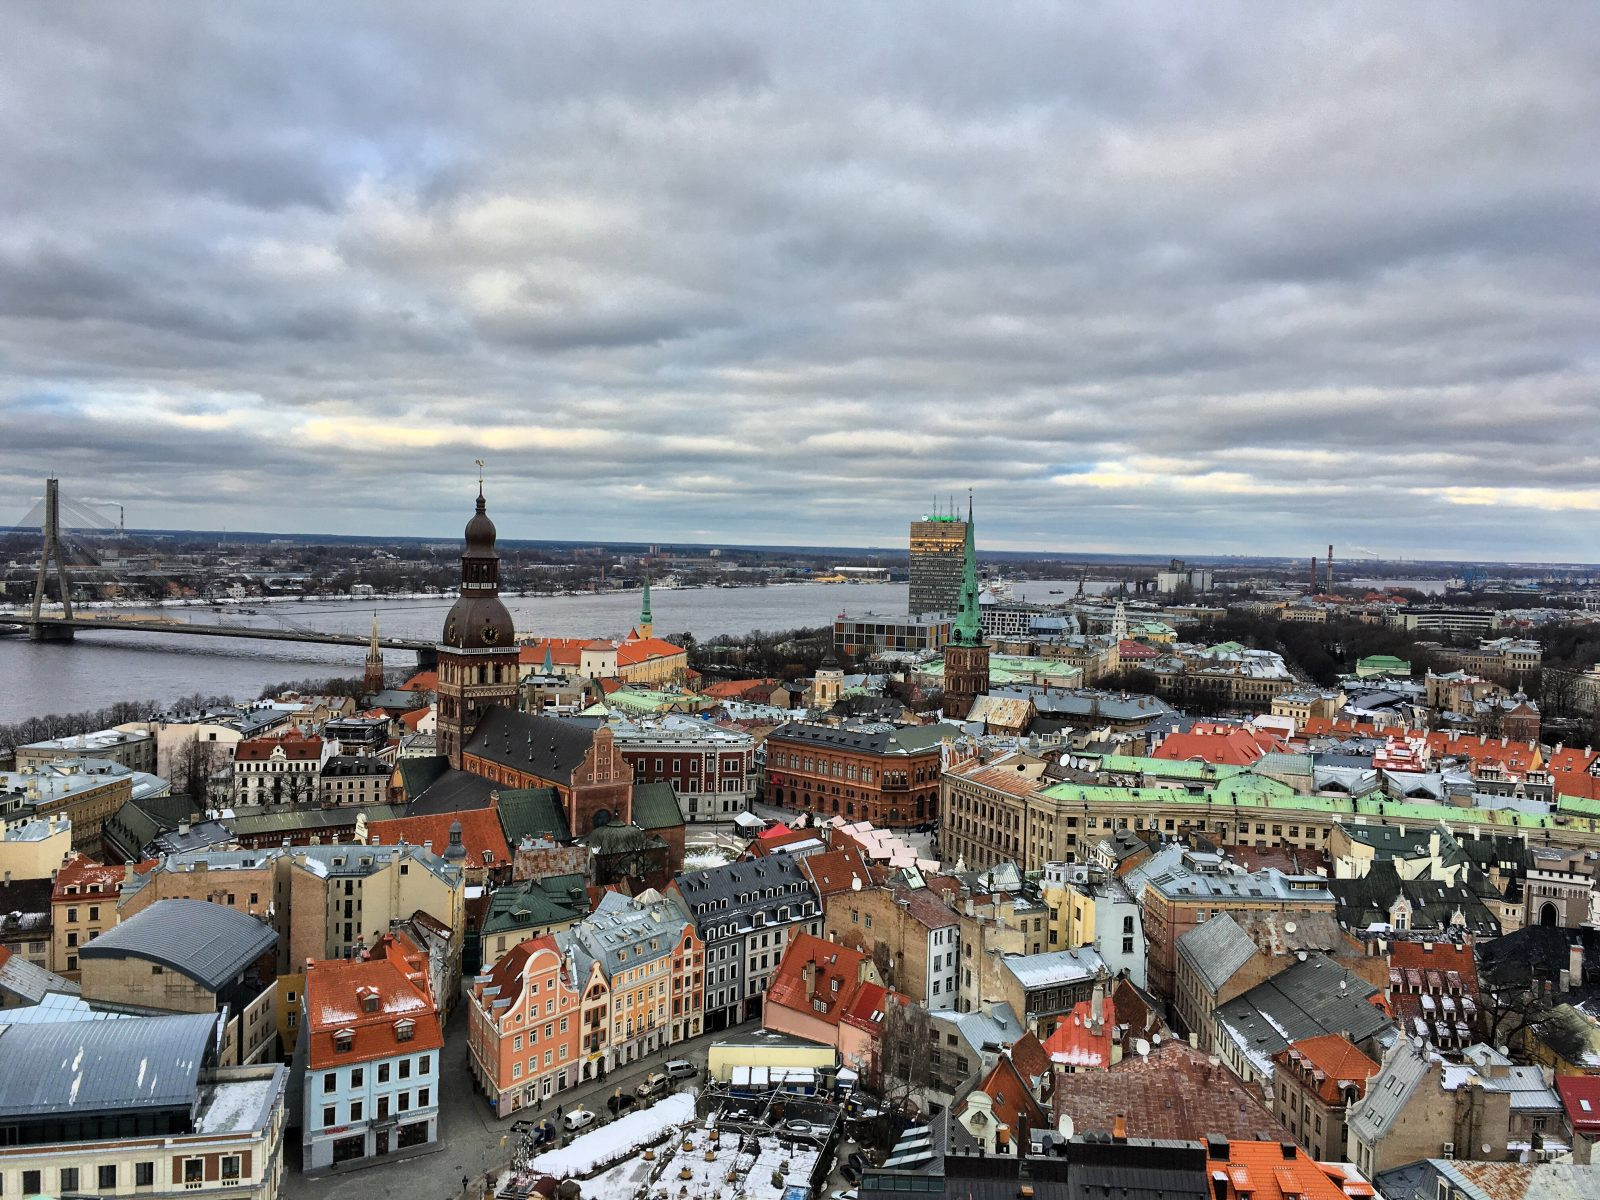 In Pictures: 48 Hours in Riga